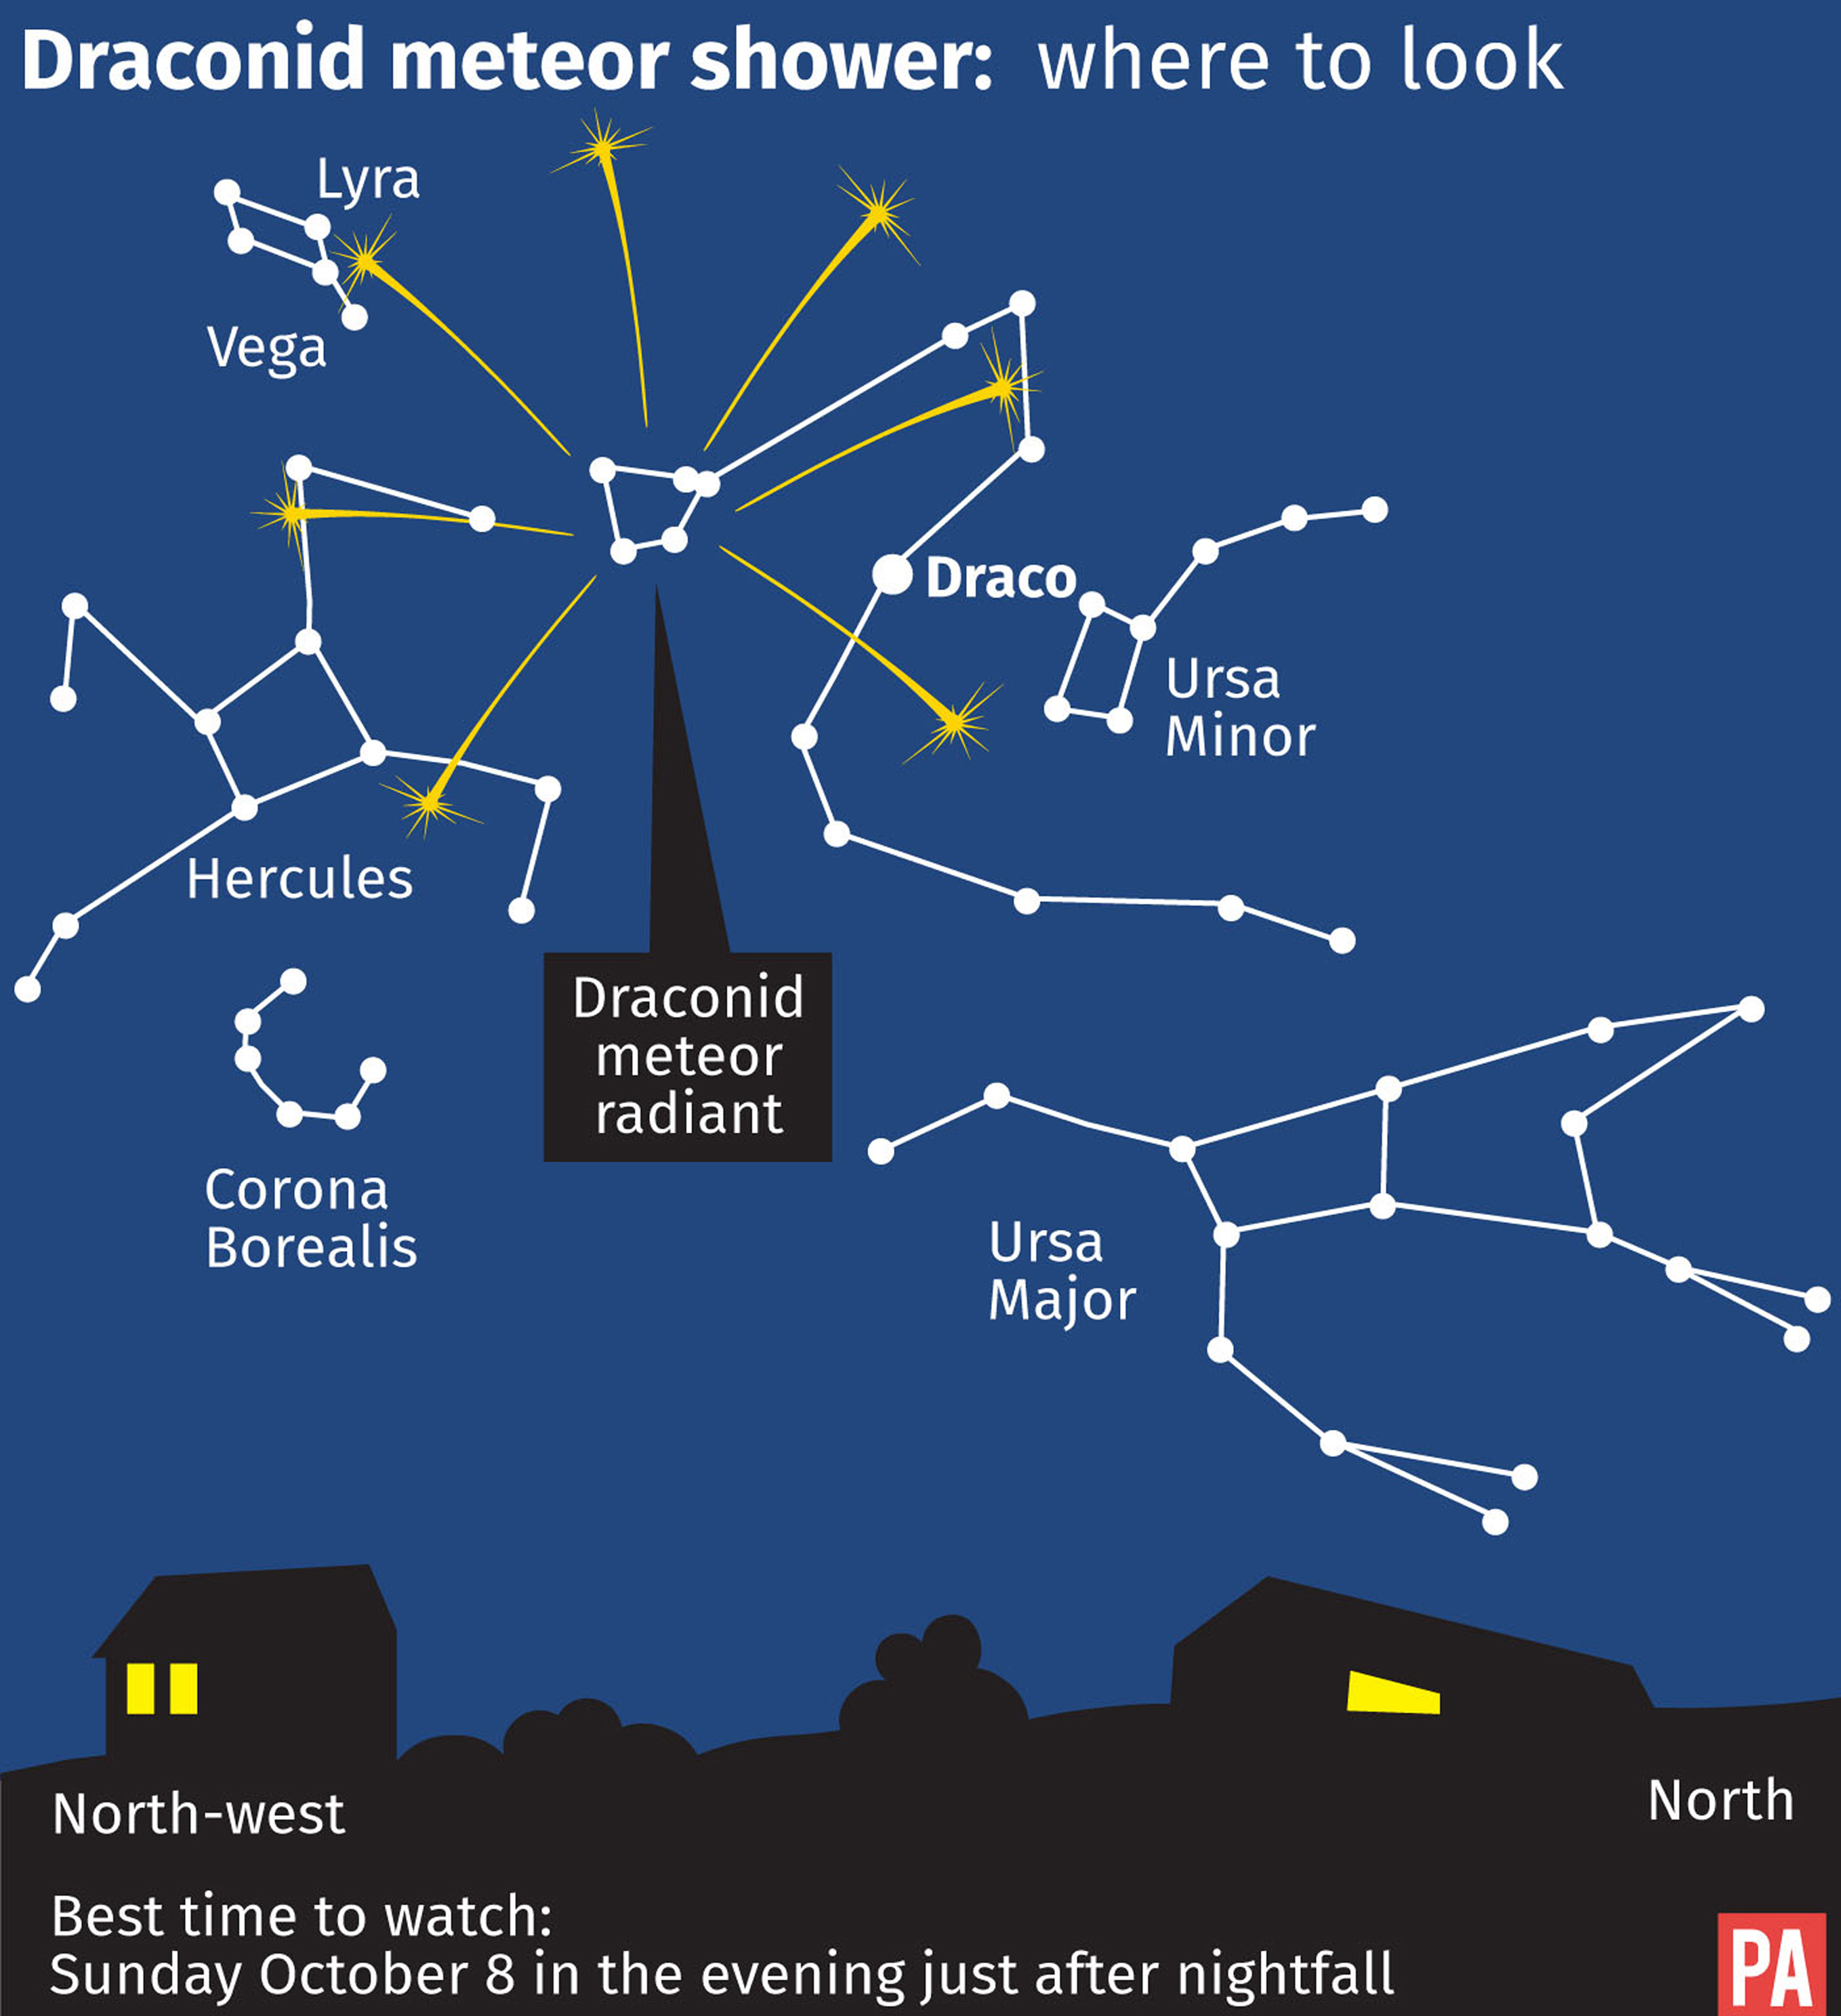 Draconid meteor shower - where to look. See story SCIENCE Meteor. Infographic from PA graphics